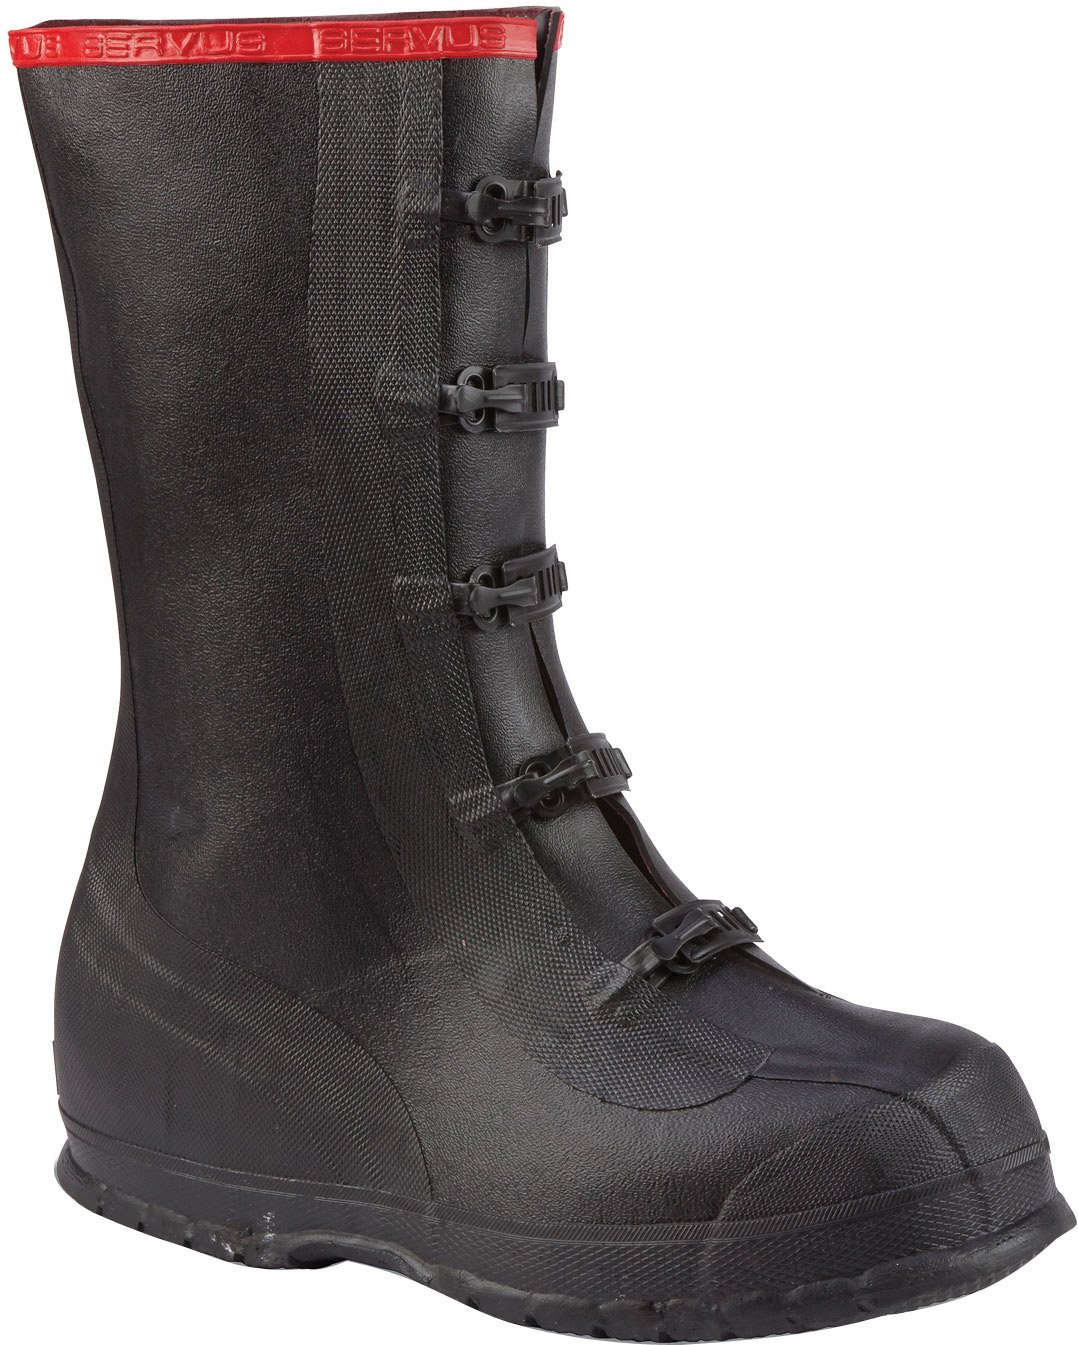 Ranger 13 Rubber Supersized Men's Overboots, Black (T419) Sperian Protection Group T419-BLM-080